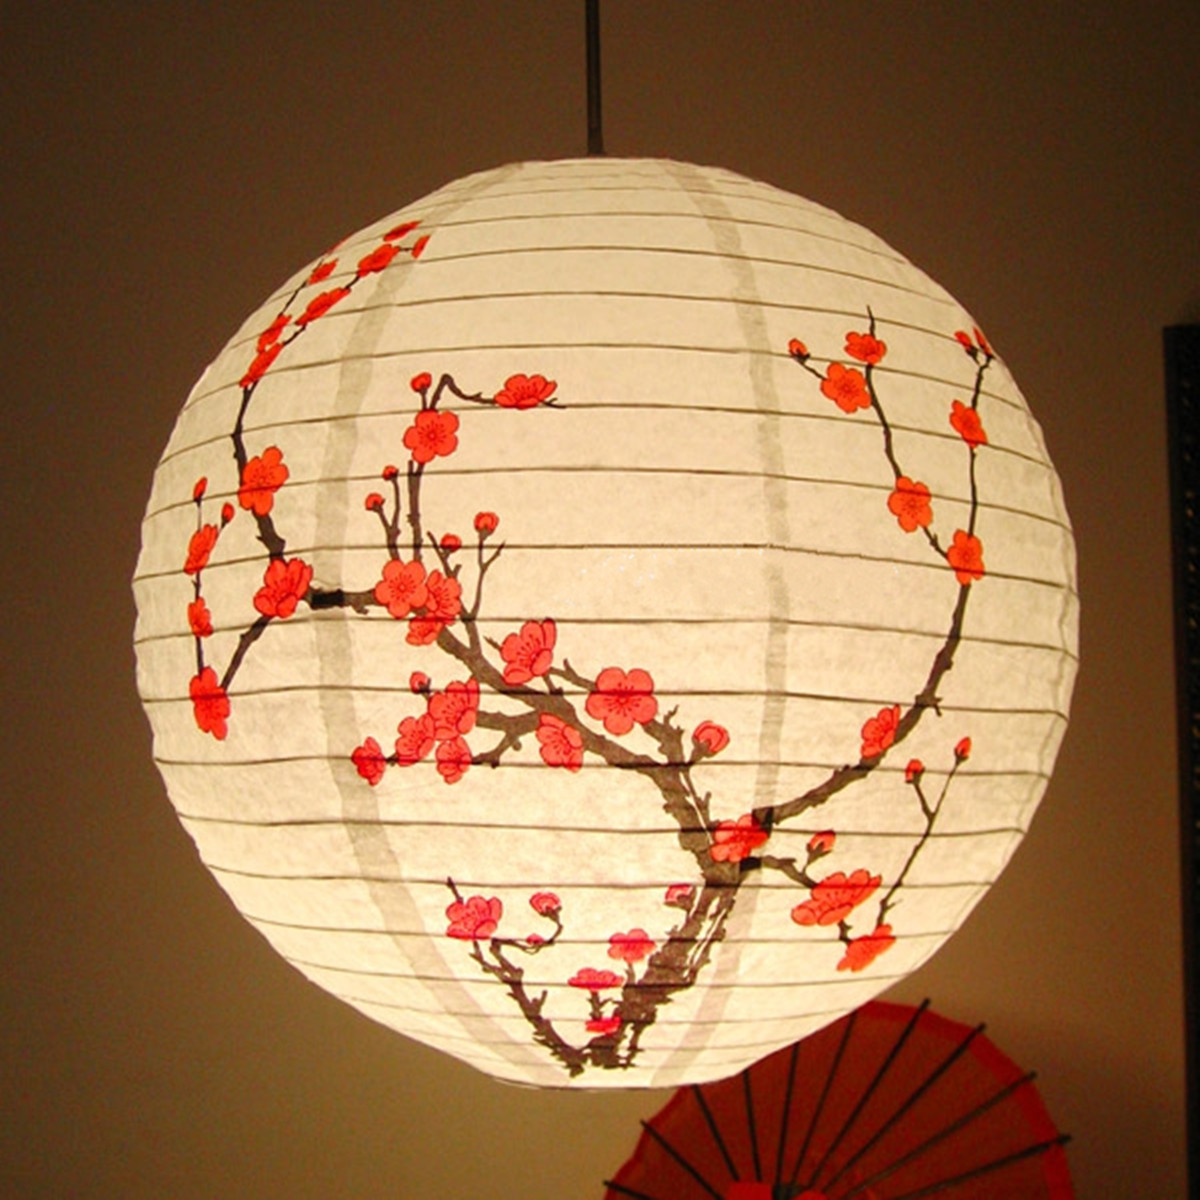 35cm Paper Lantern Plum Blossom Round Lampshade Party Wedding Restaurant Home Decoration Chinese Oriental Style Light